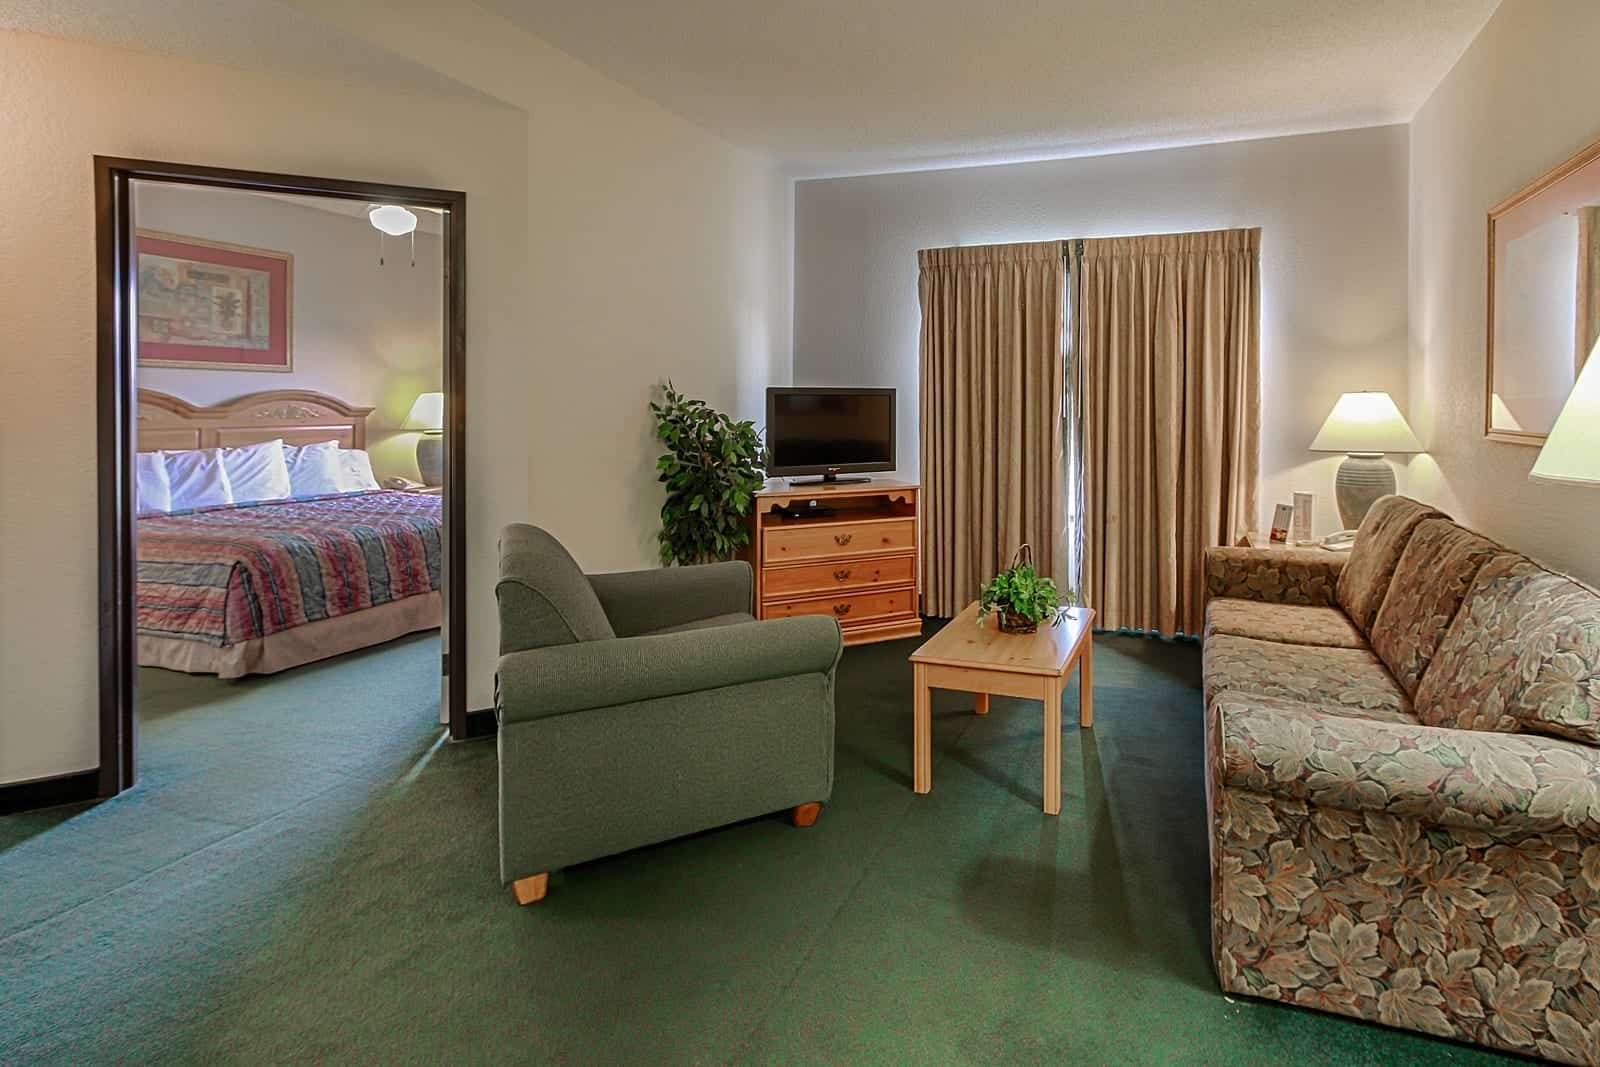 3 Benefits Of Staying At Our Pigeon Forge Suites For Your